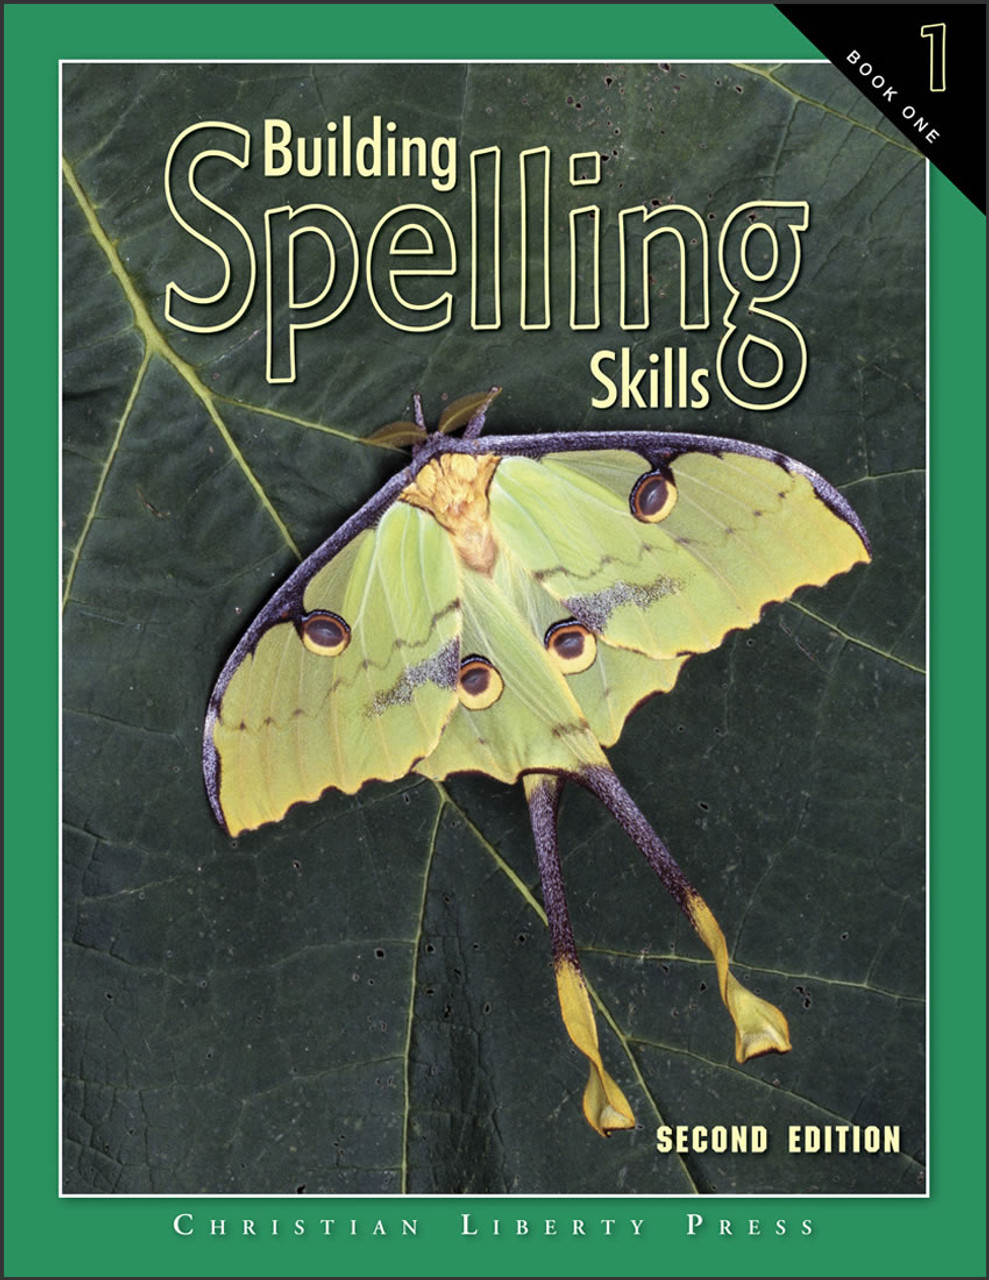 Building Spelling Skills Book 1, 2nd edition